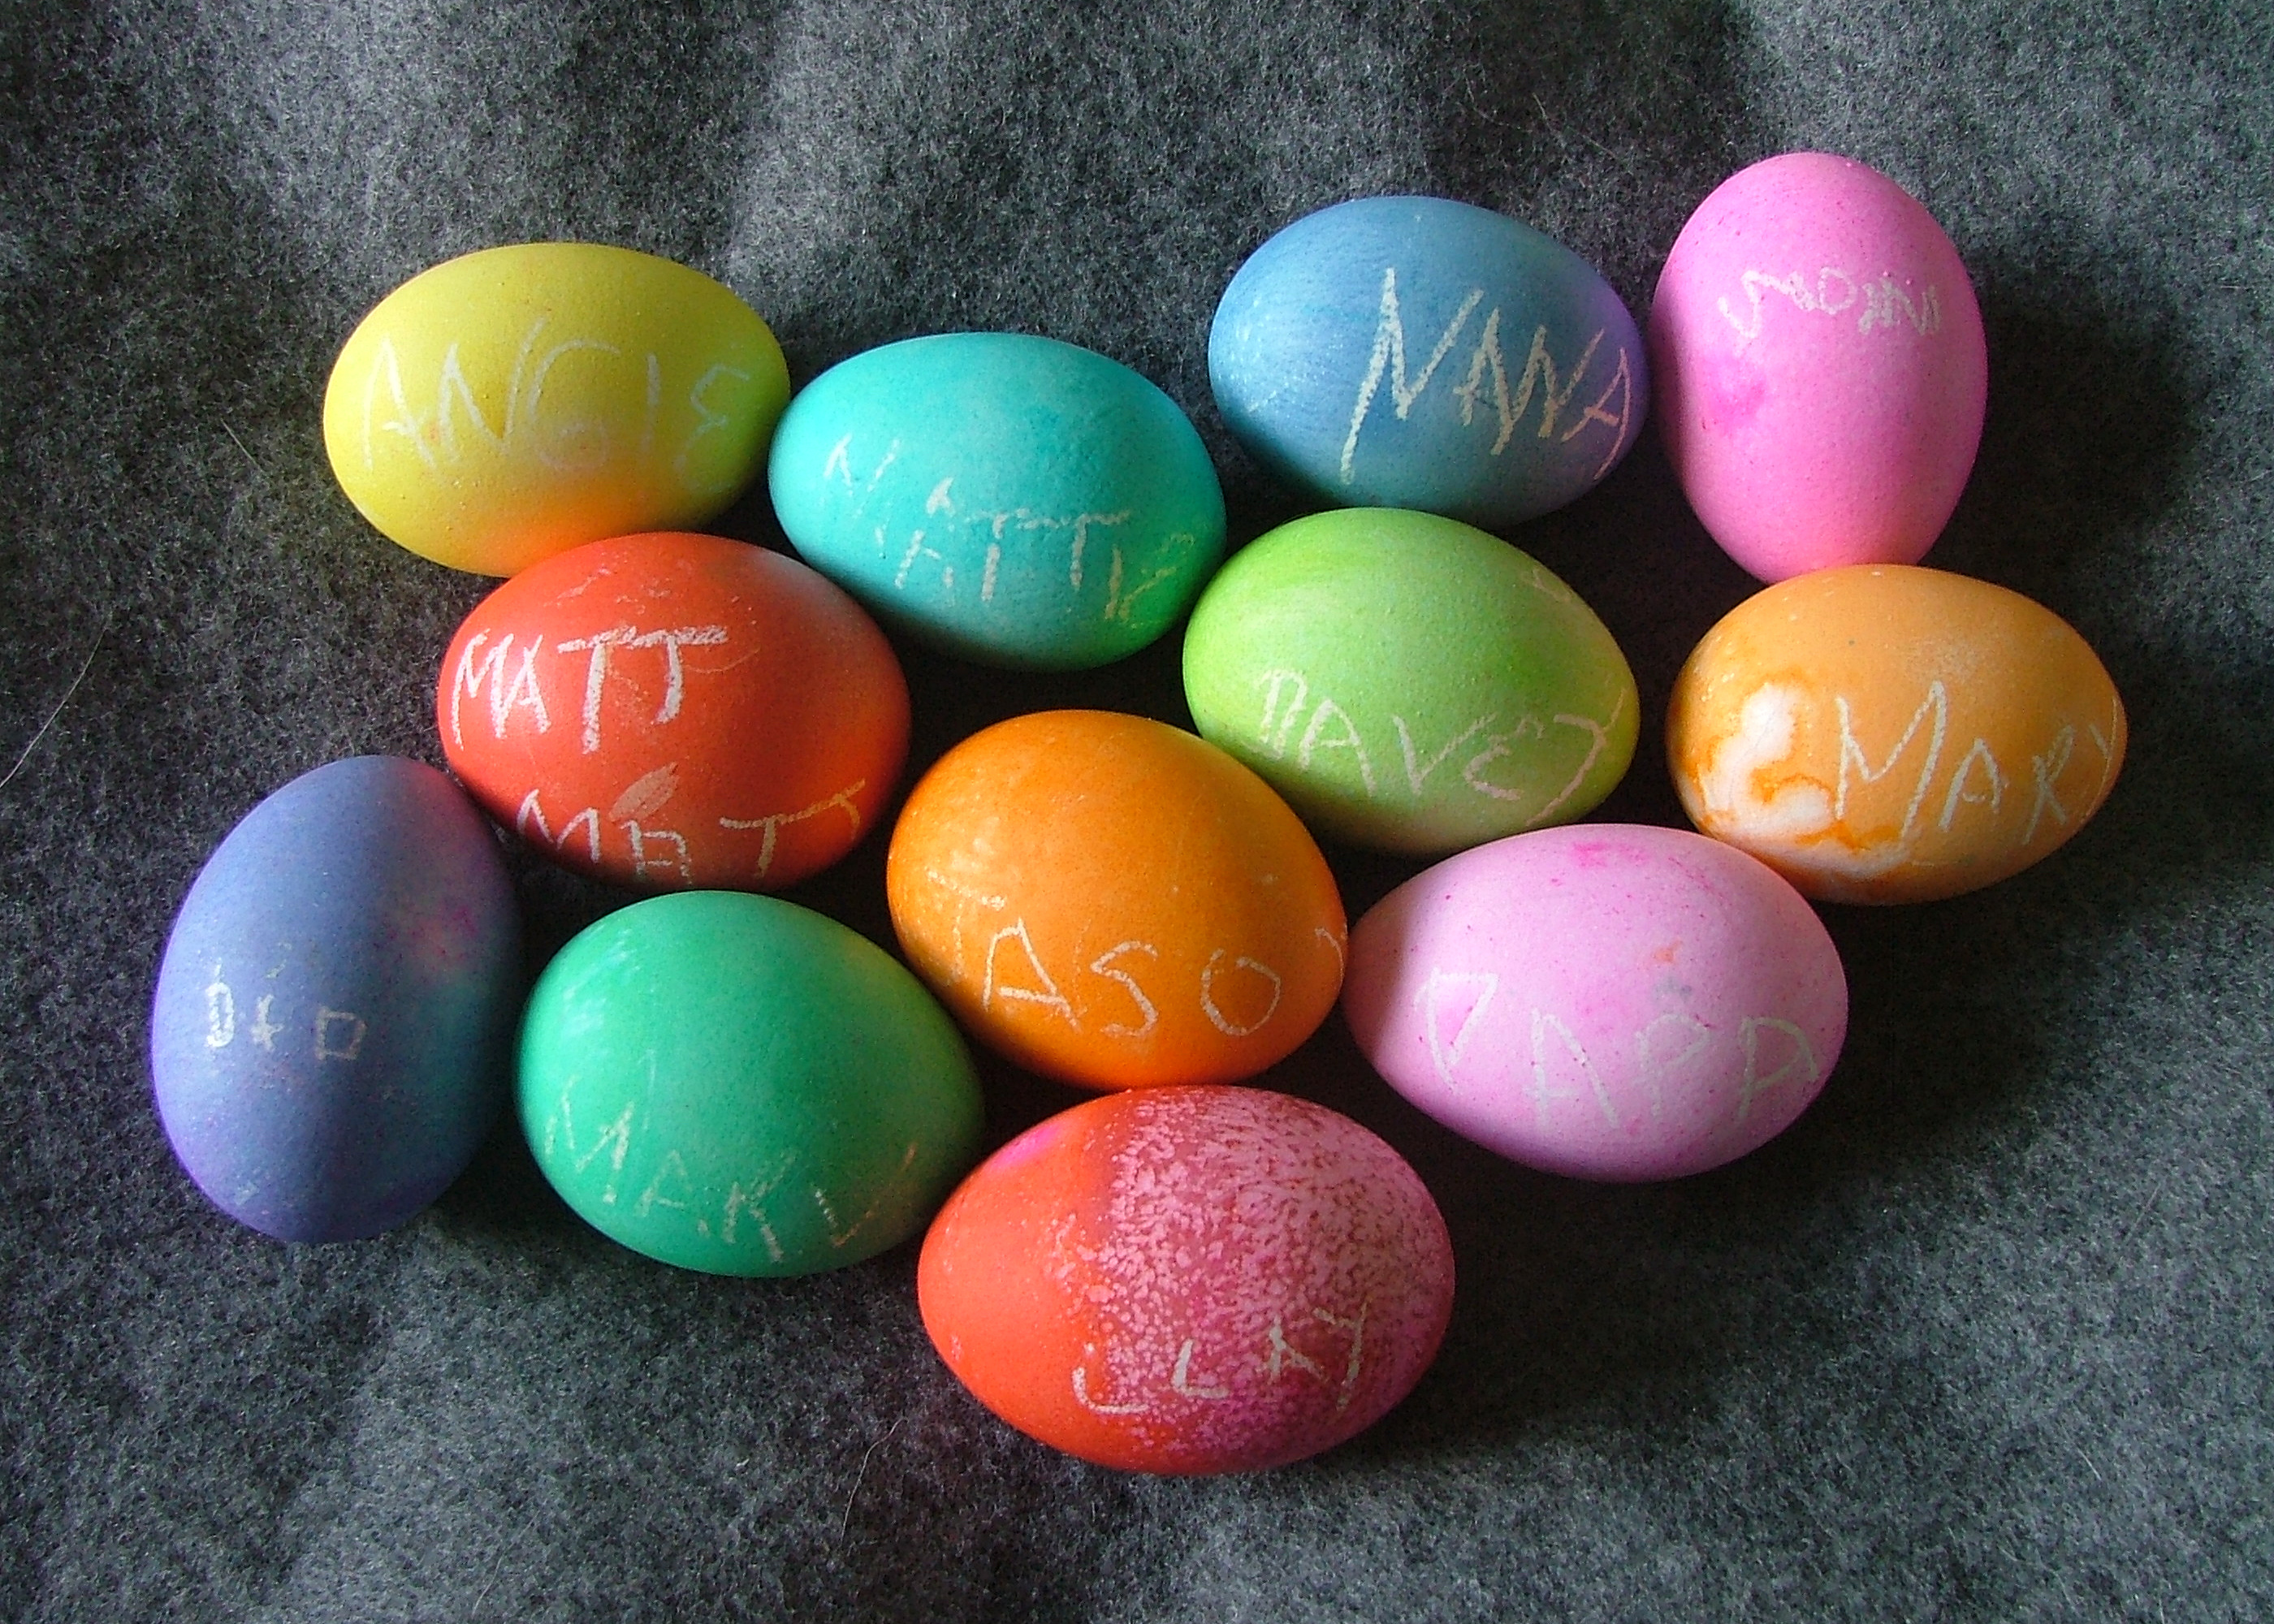 American Easter eggs from Washington